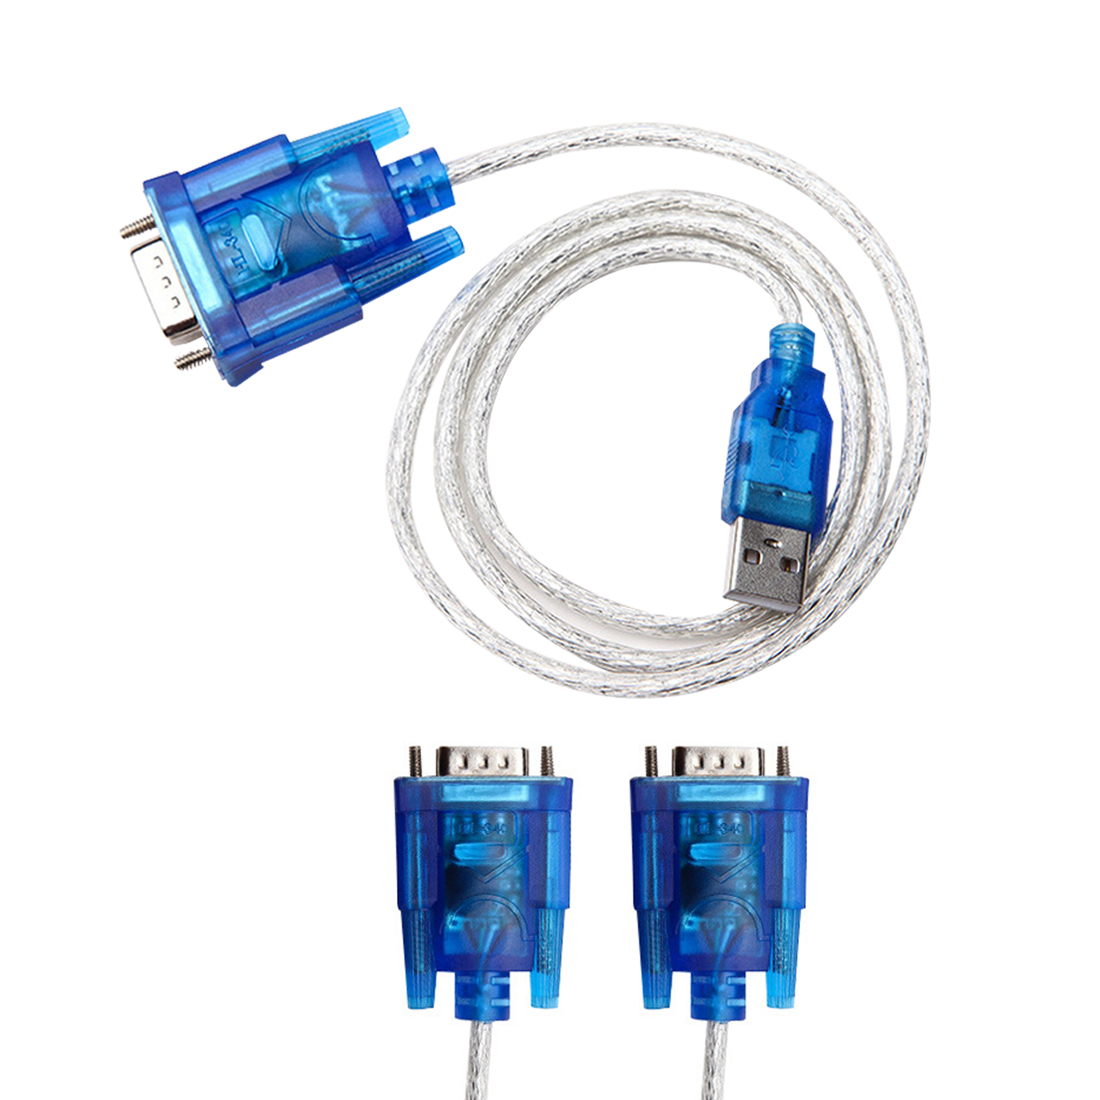 Marsnaska Hot Selling 1PC 80cm USB 2.0 to RS232 COM Port Serial PDA 9 pin DB9 Cable Male to Male M/M Adapter for PC PDA GPS hl 340 usb to rs232 serial port 9 pin db9 pda cable convertor support windows7 64 usb to rs 232 serialport cable adapter hy582